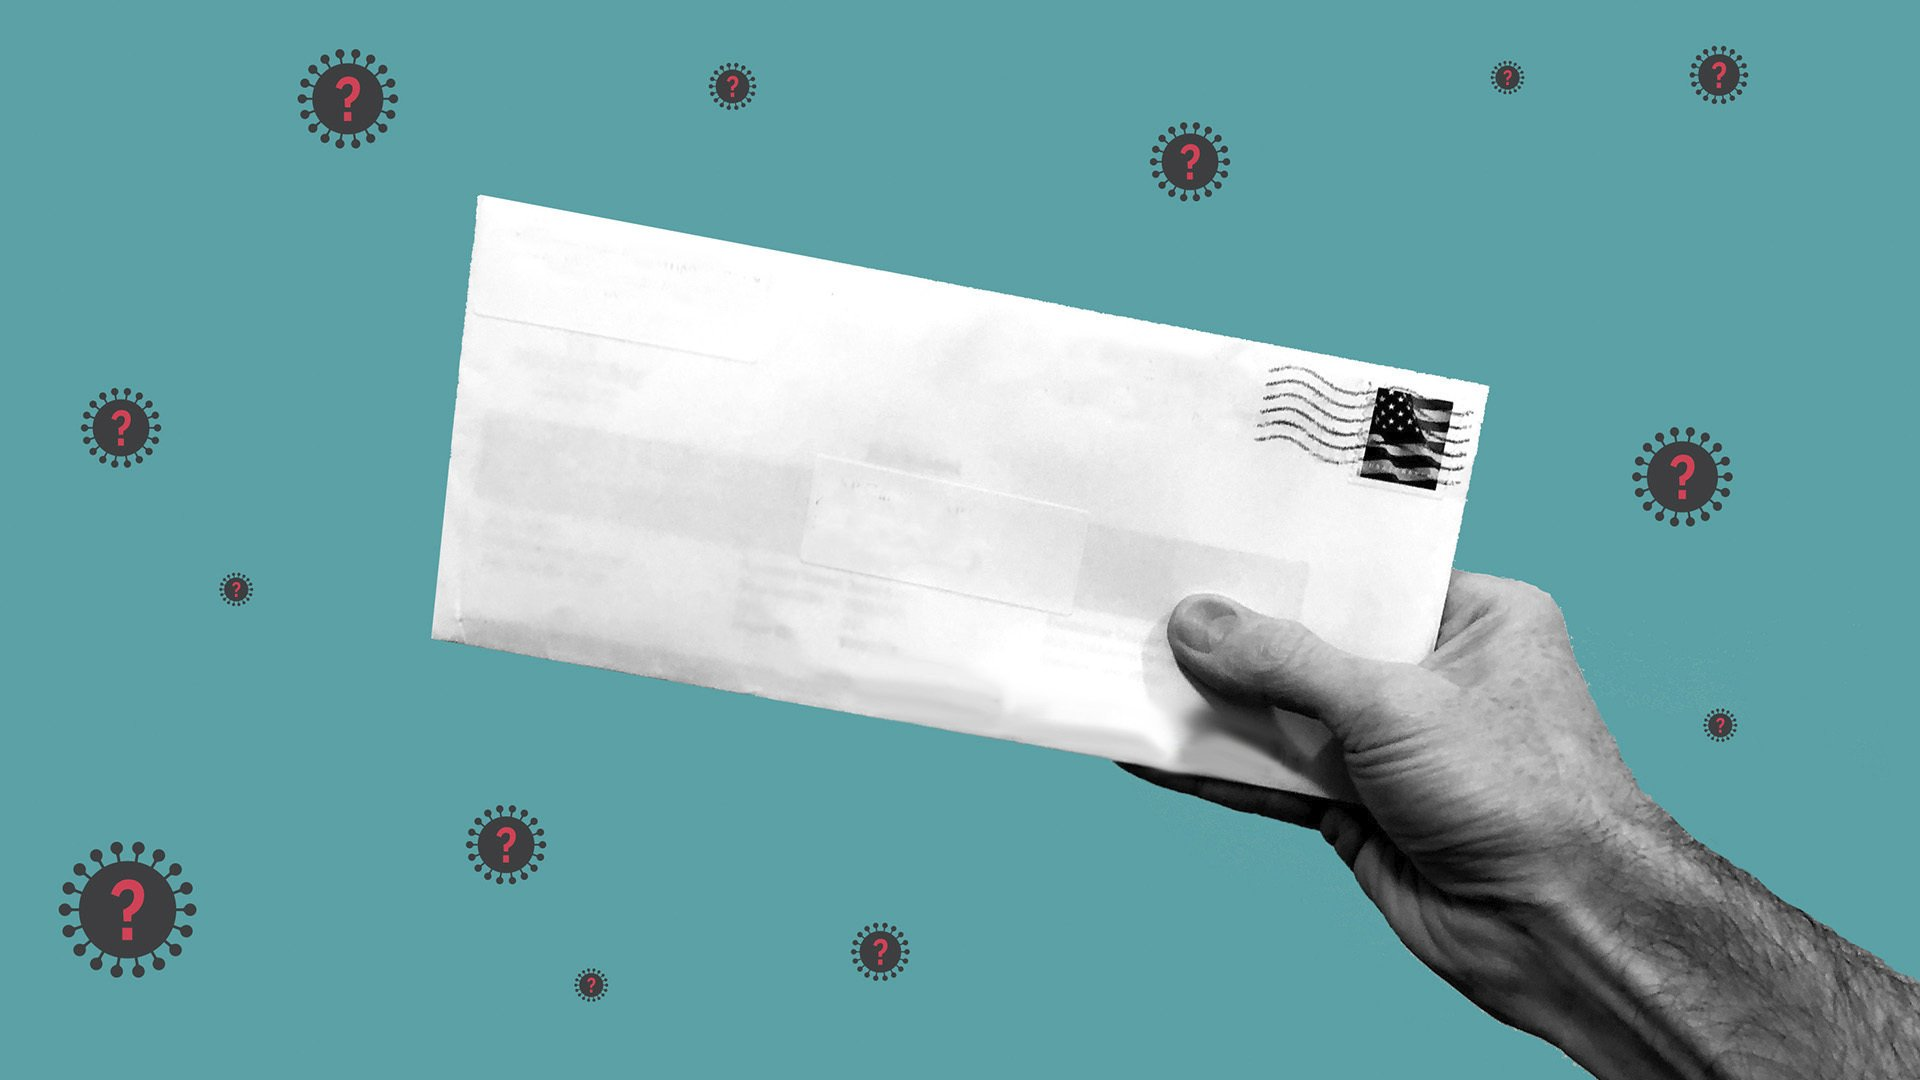 Is it safe to open mail and packages during the pandemic?